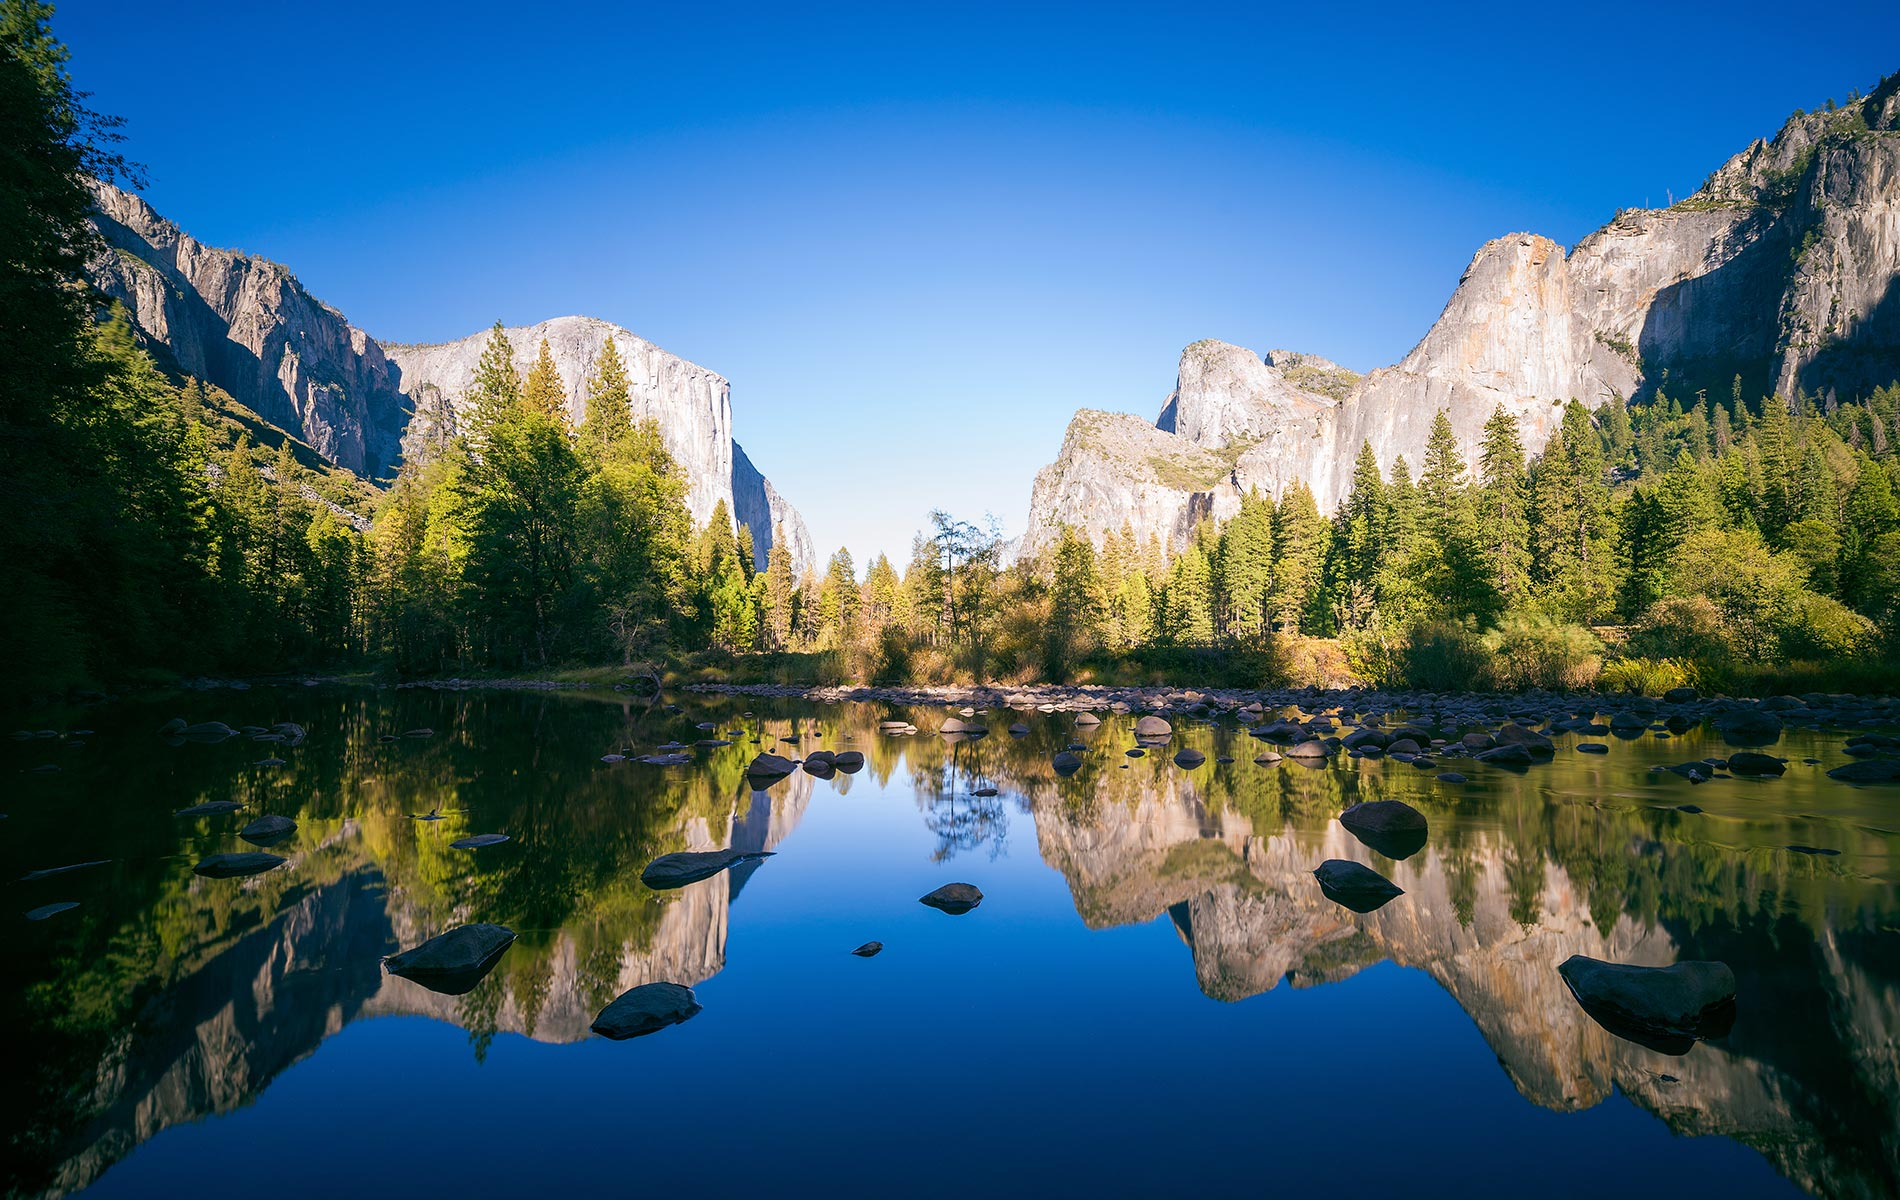 An iconic view of Yosemite National Park in California's Sierra Nevada mountains